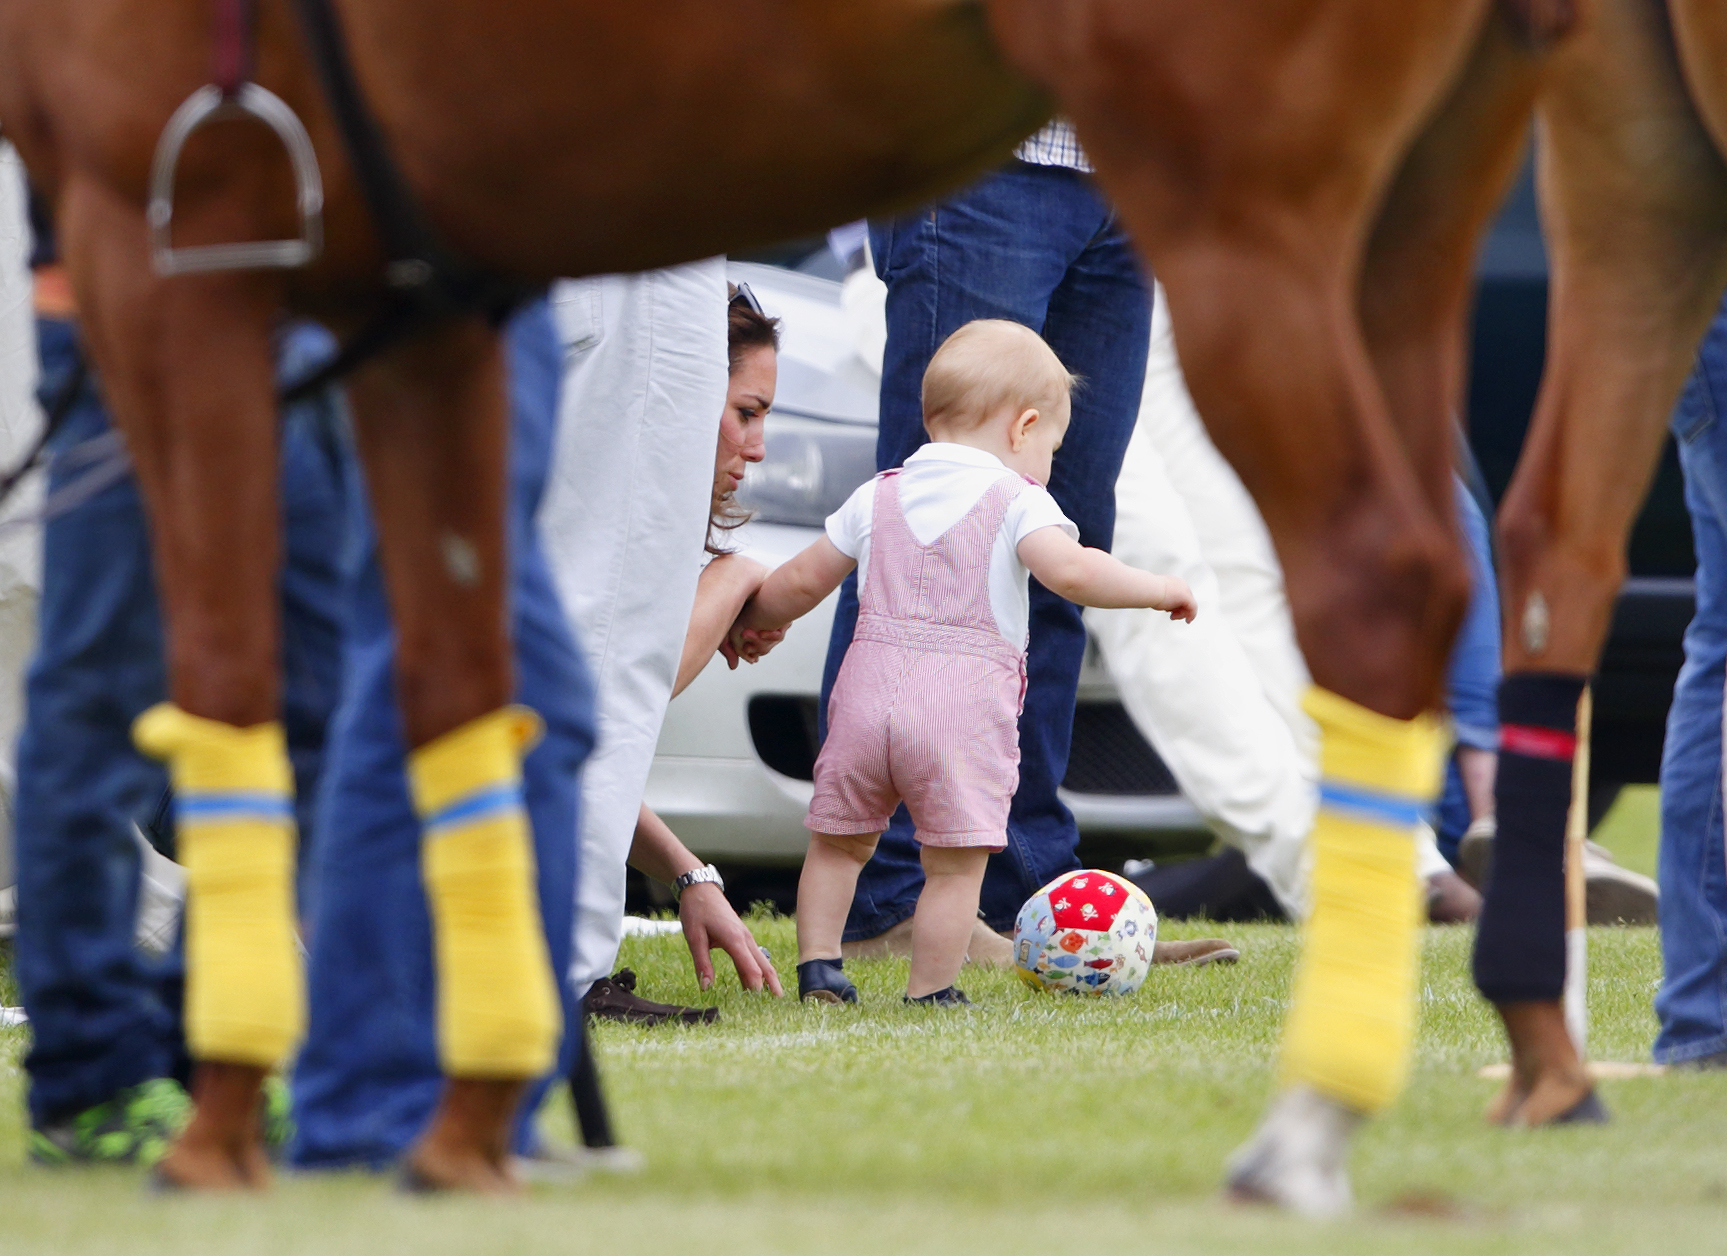 Prince George of Cambridge plays with a football whilst holding his mother Catherine, Duchess of Cambridge's hand at Cirencester Park Polo Club on June 15, 2014 in Cirencester, England.